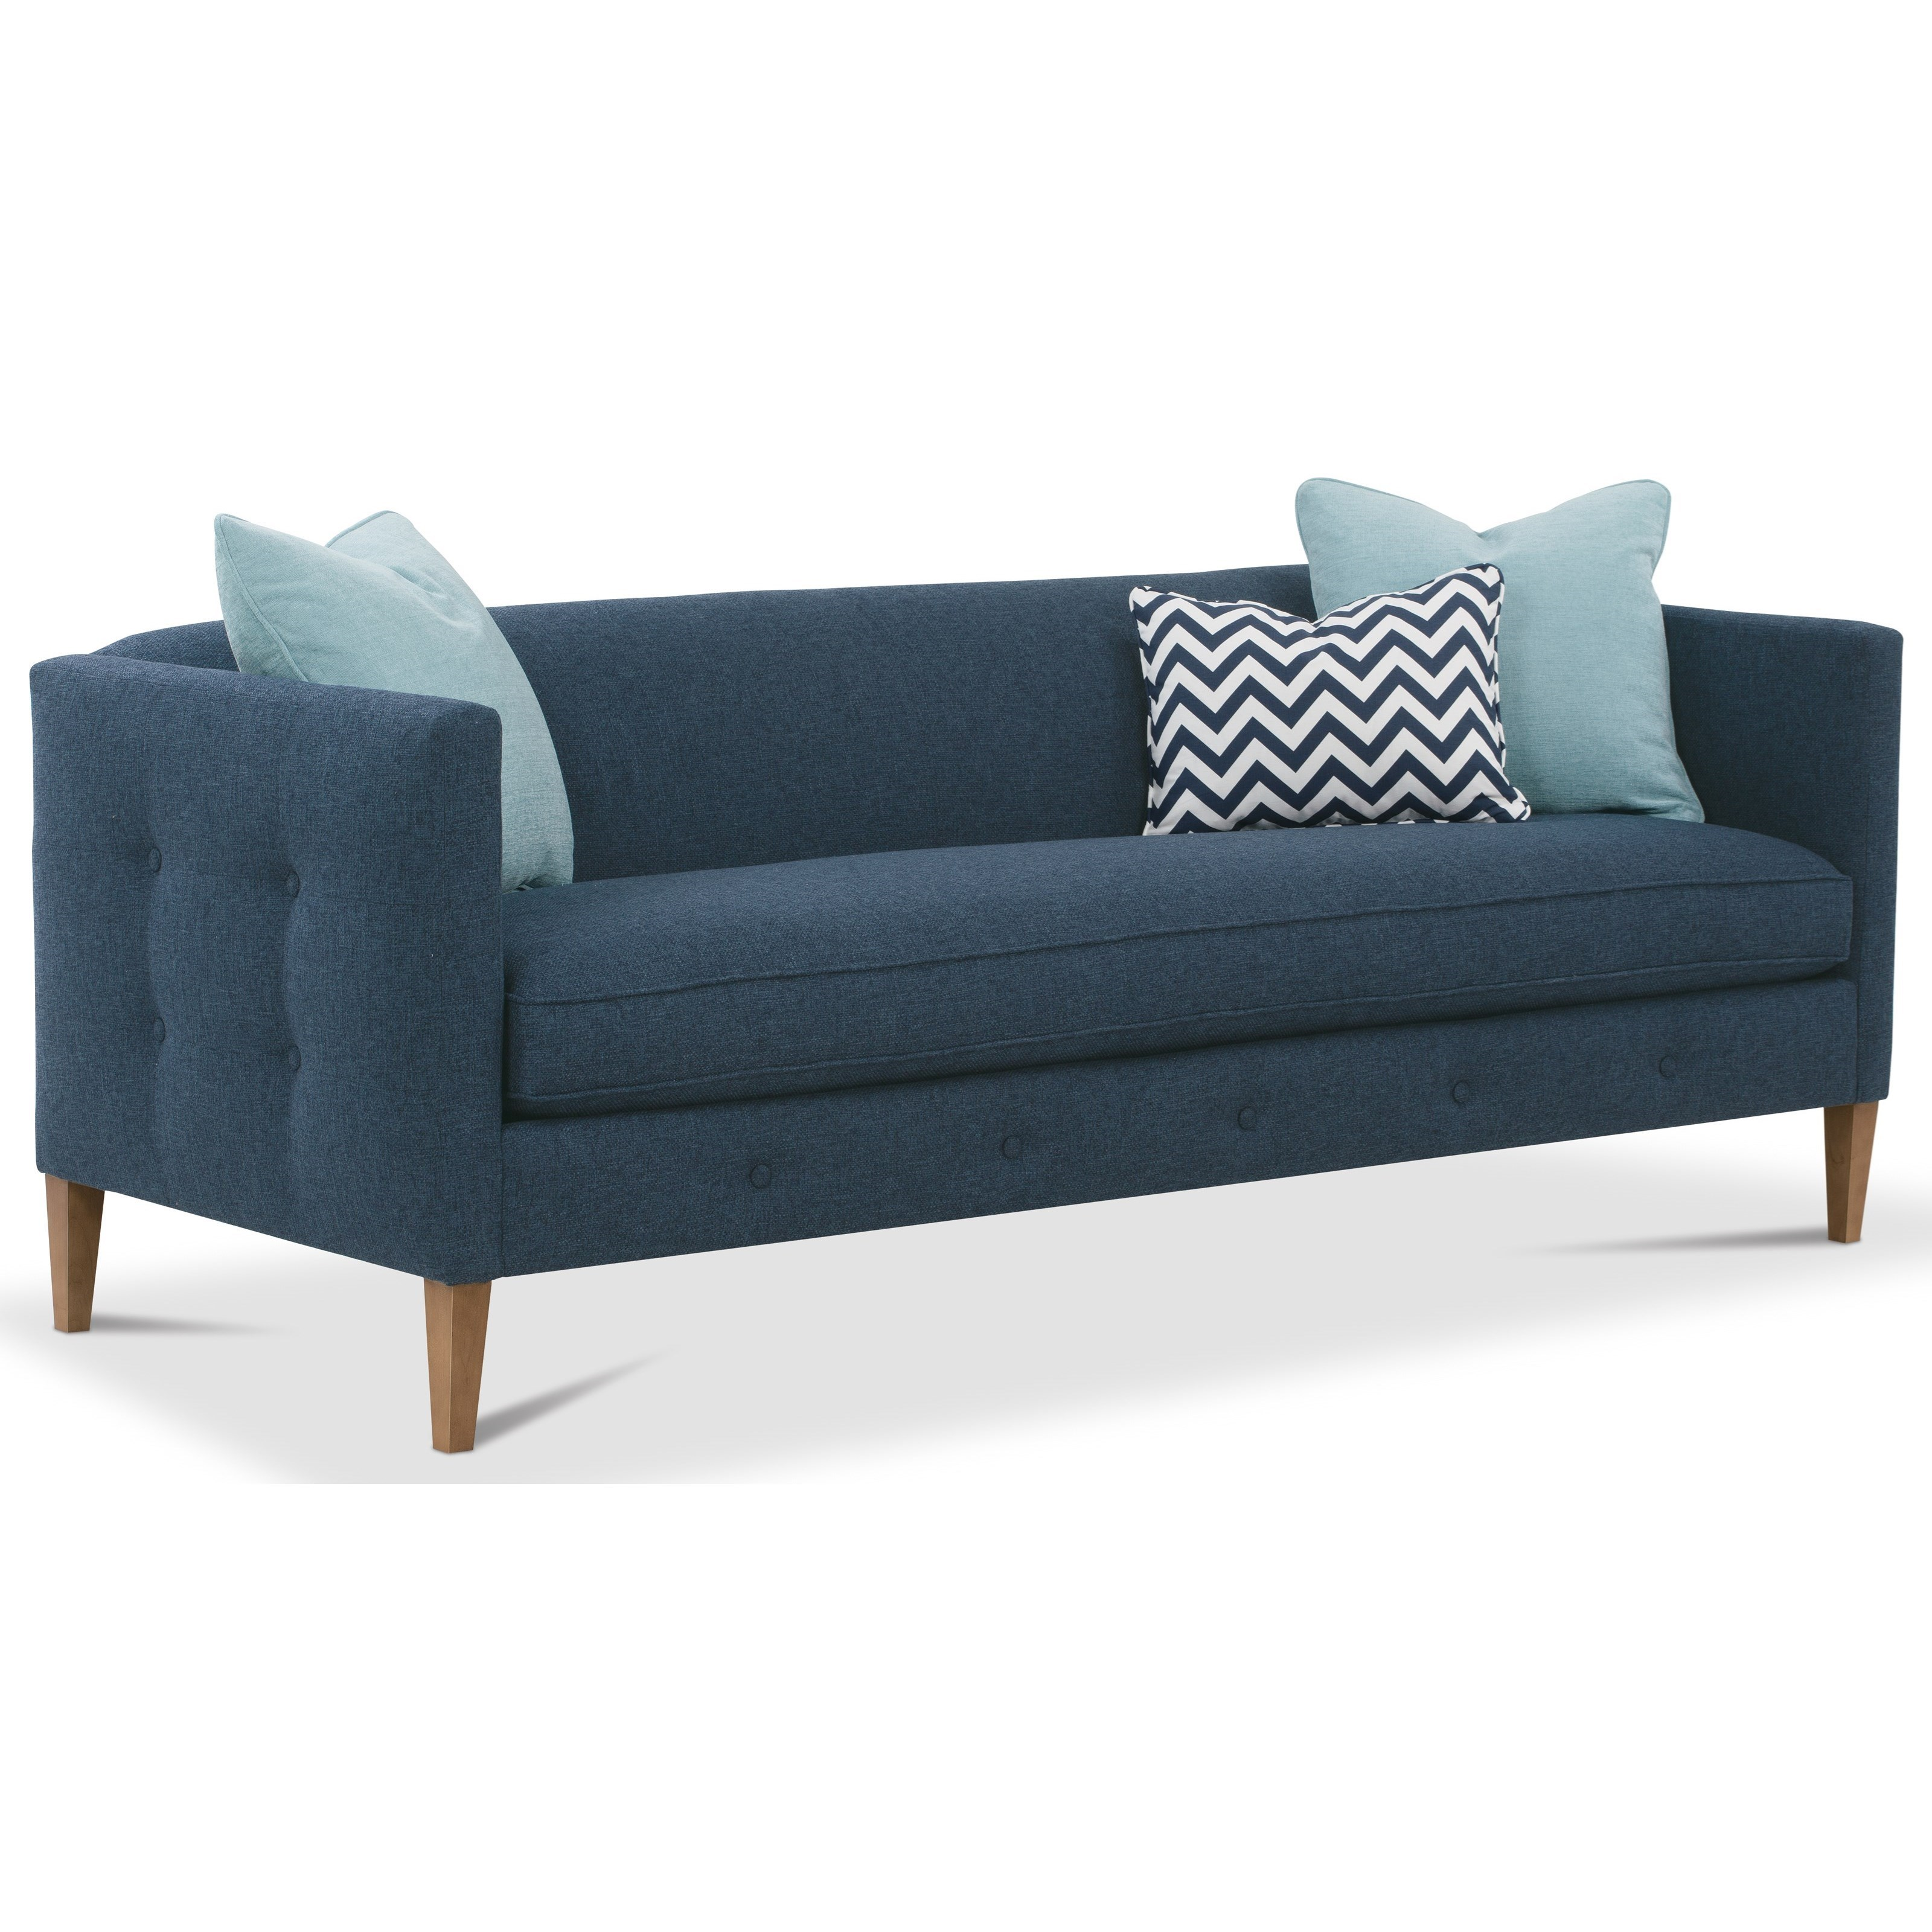 Rowe Claire Bench Cushion Sofa ...